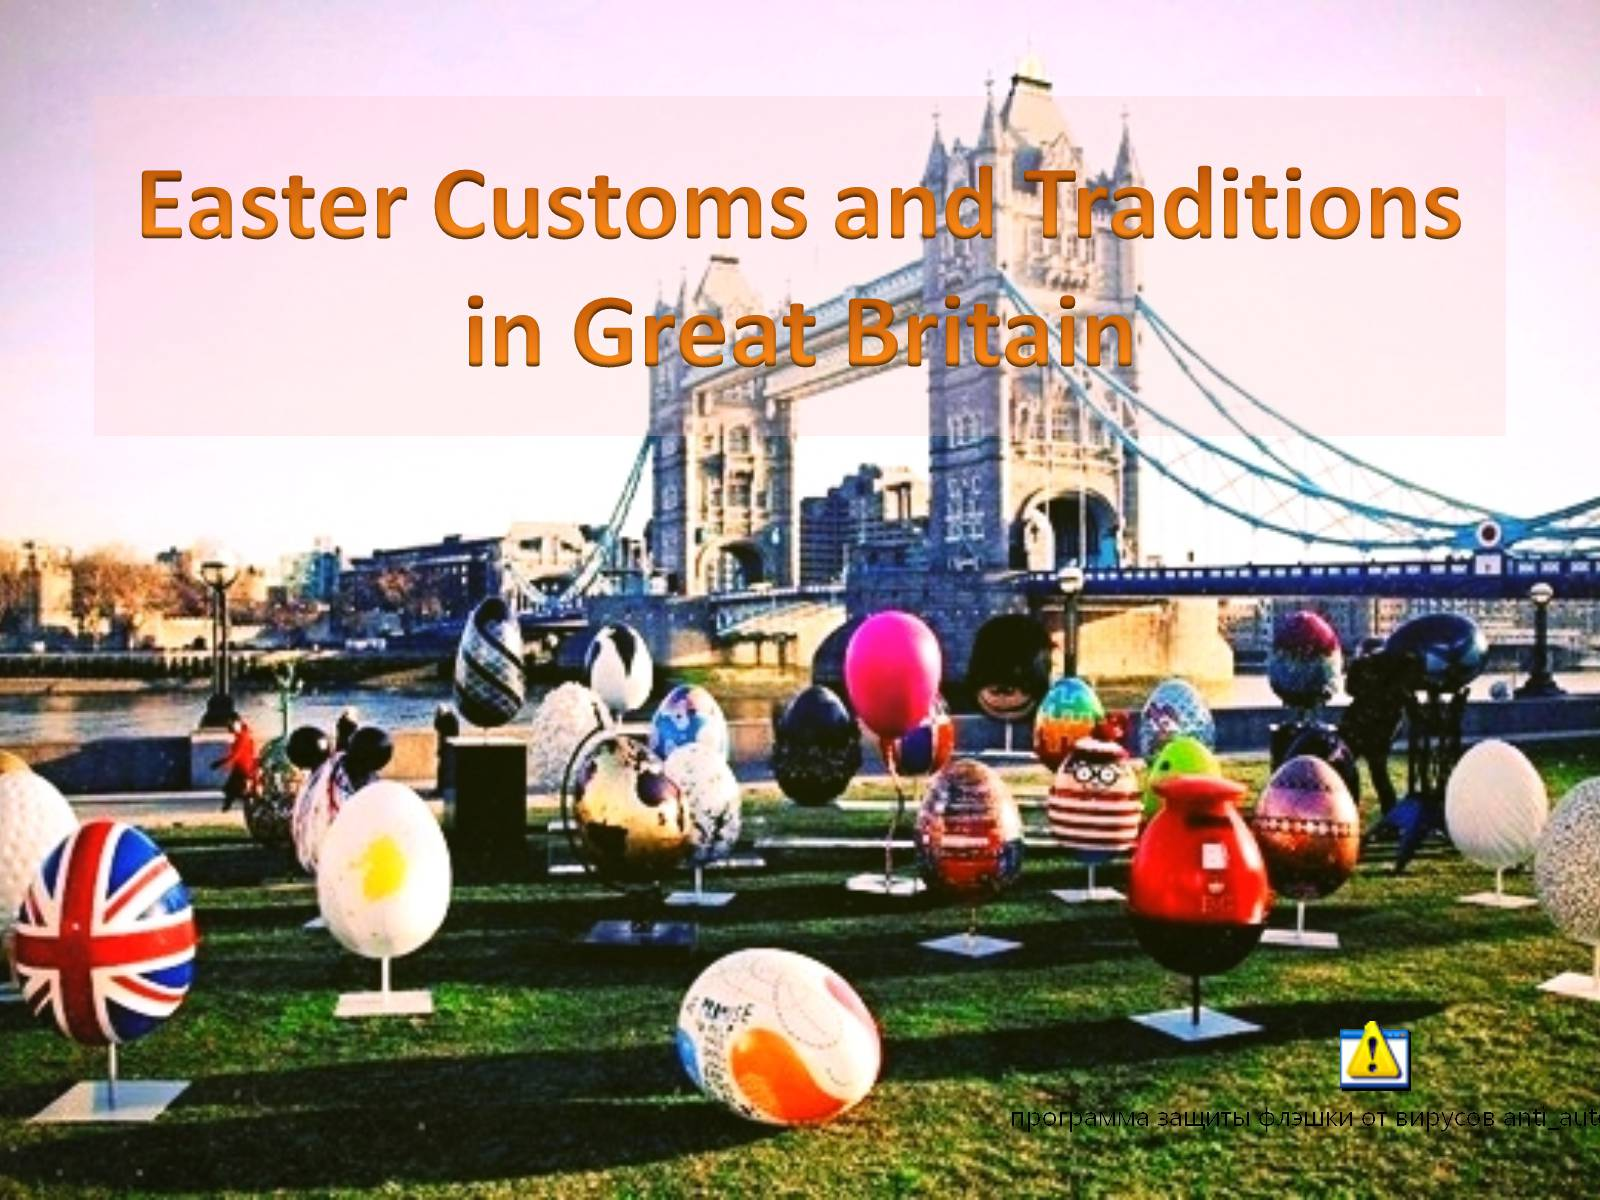 Презентація на тему «Easter Customs and Traditions in Great Britain»